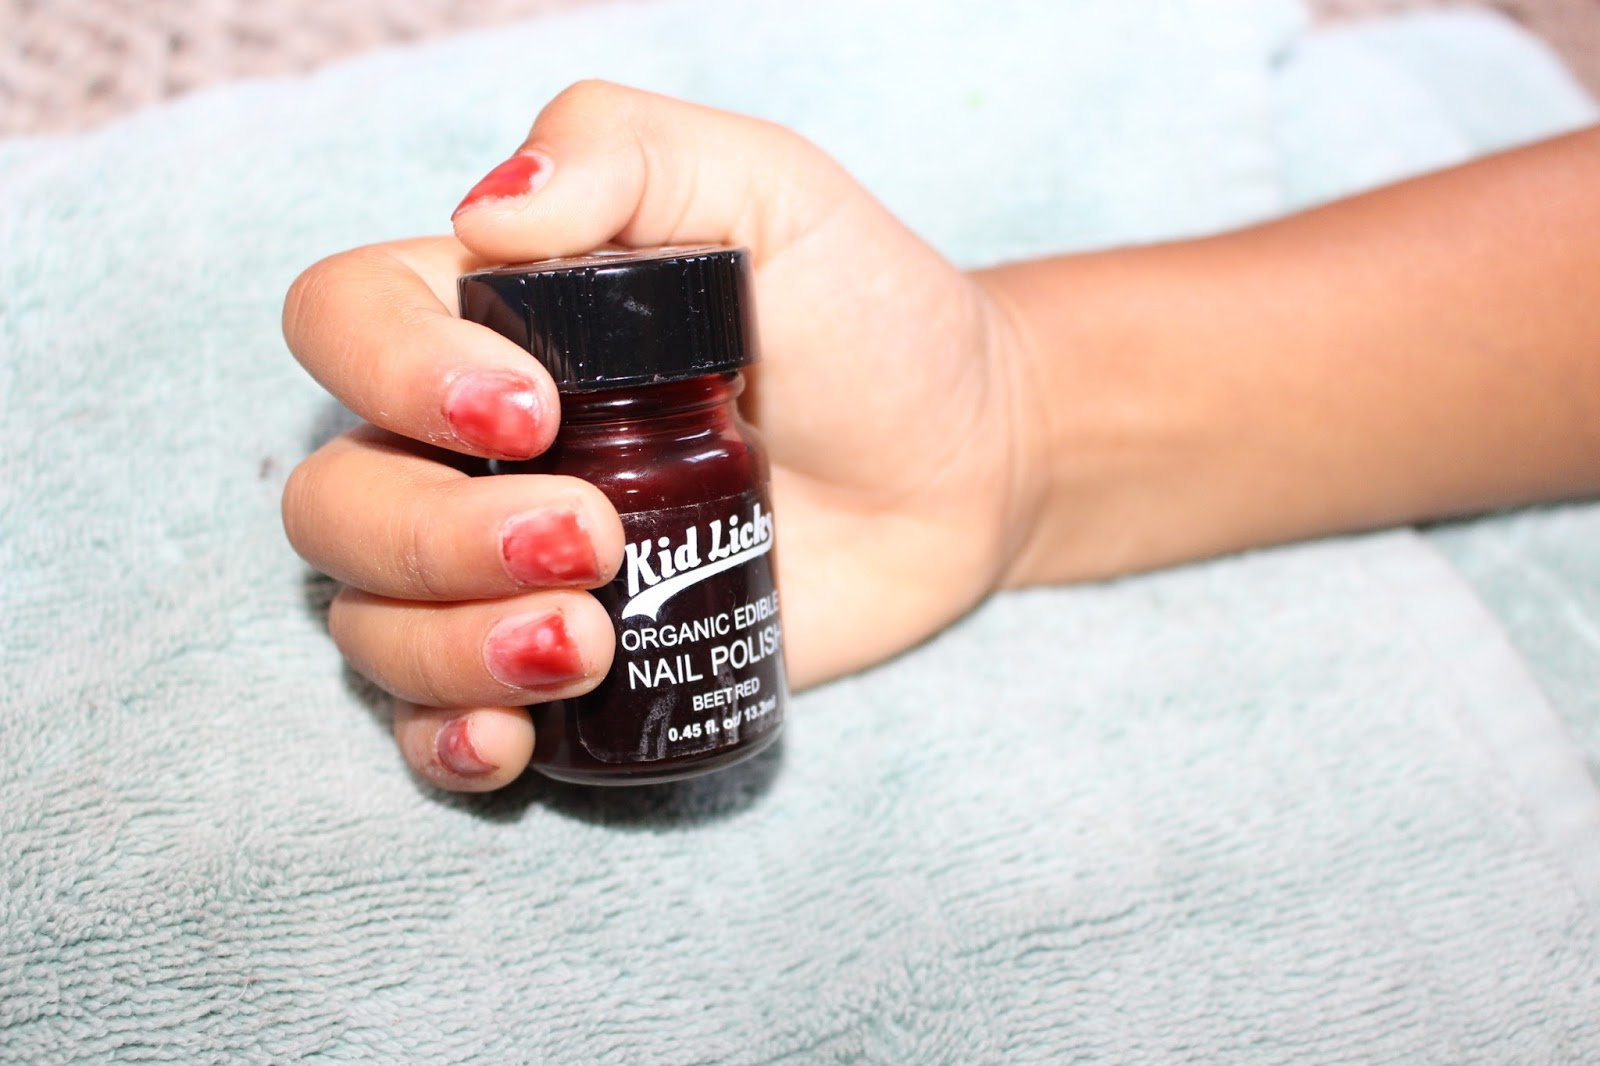 Kid Licks, Edible Nail polish, Review